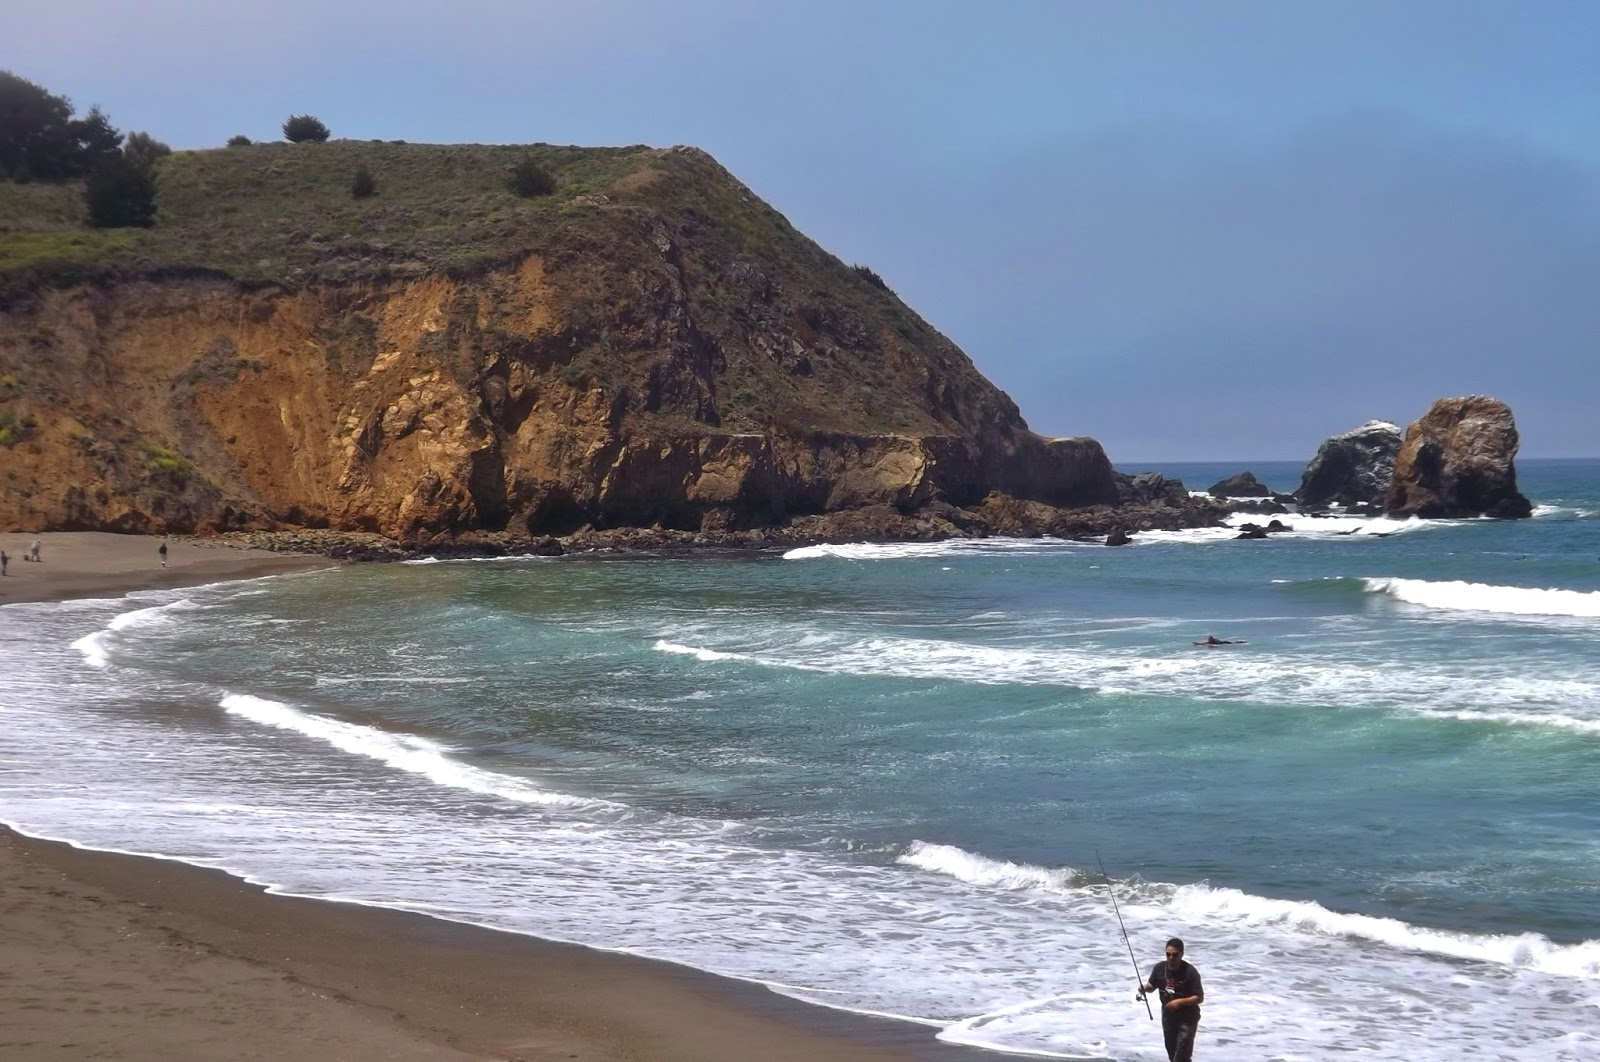 I Am Paring In Our World Tuesday Bay Area Rockaway Beach Pacifica